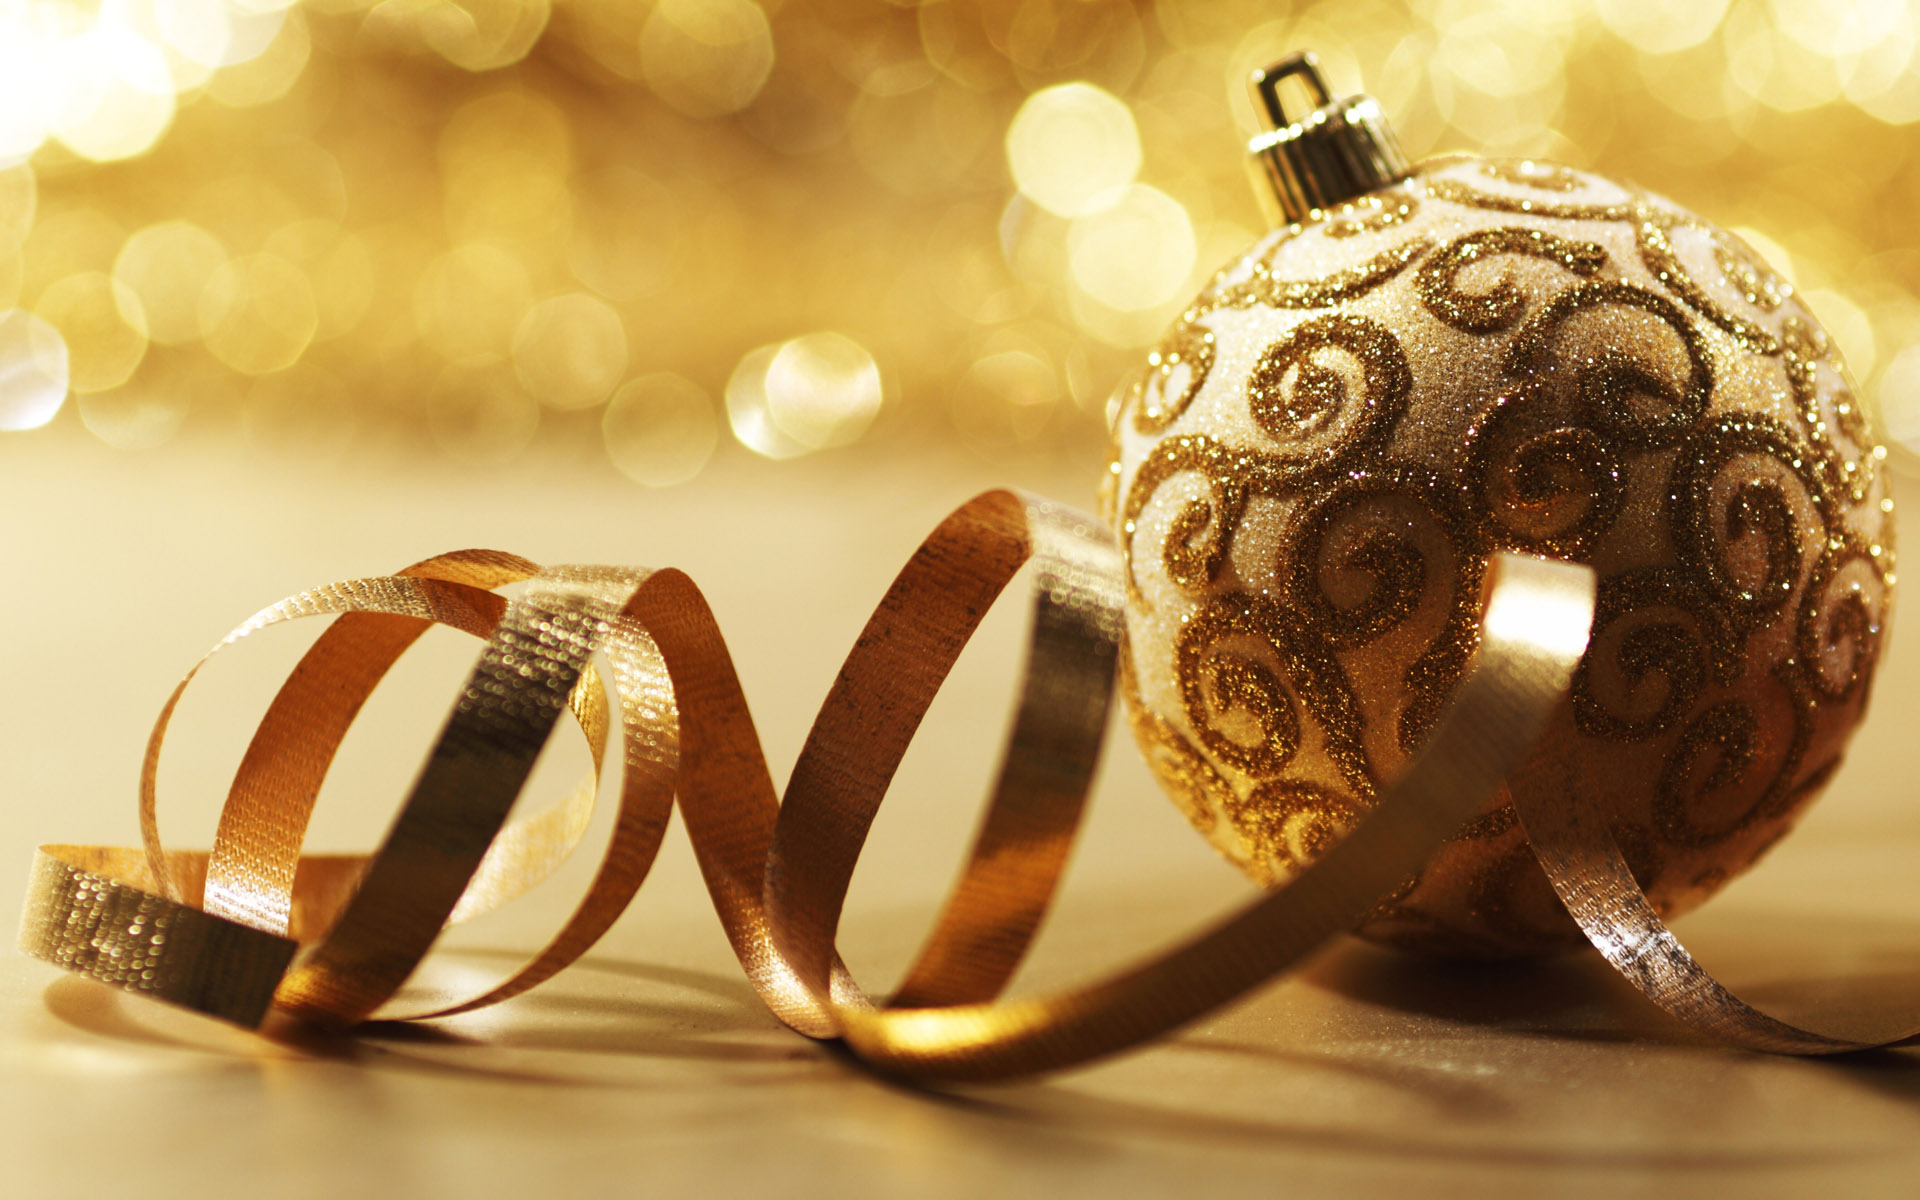 Merry Christmas: The Fatwa or the Fitra?